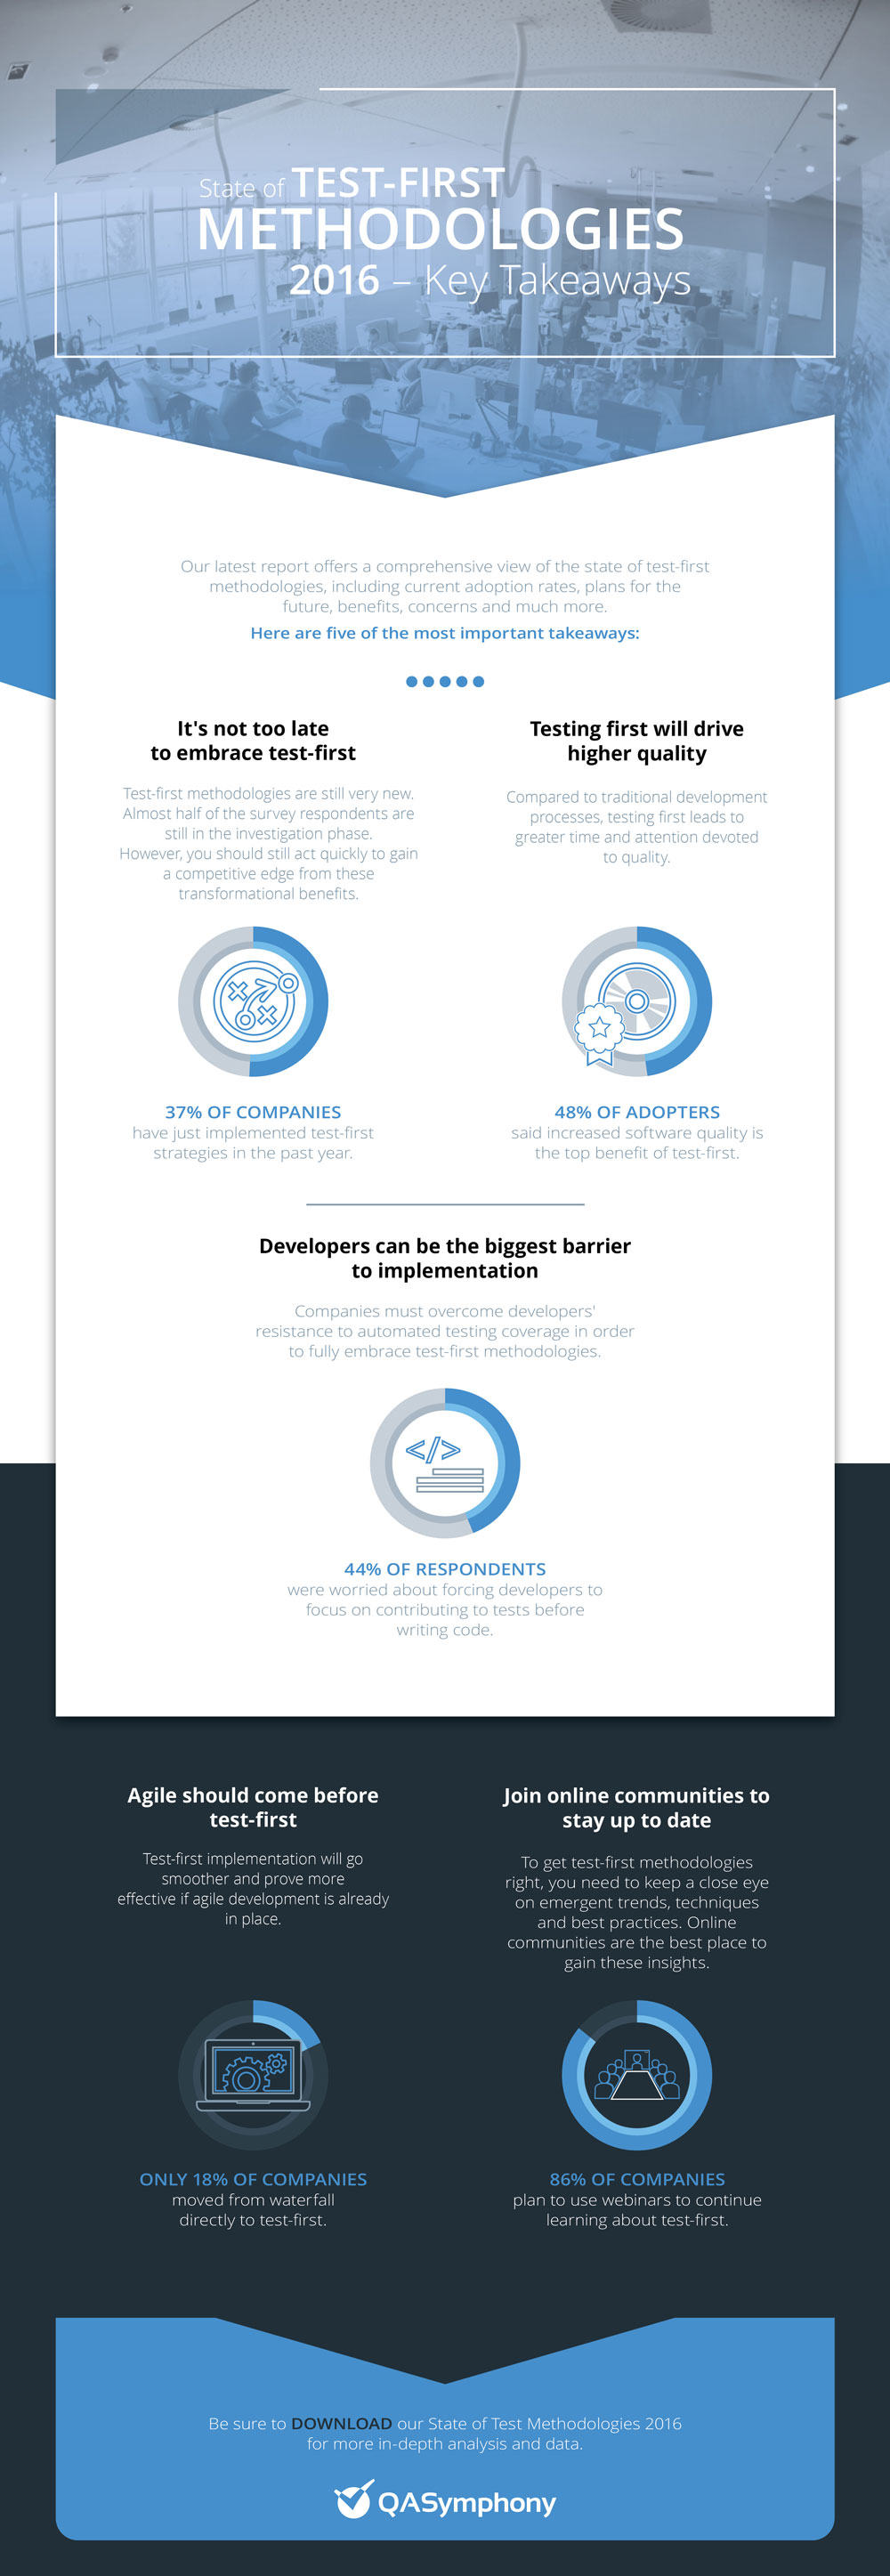 State of Test-First Methodologies Infographic